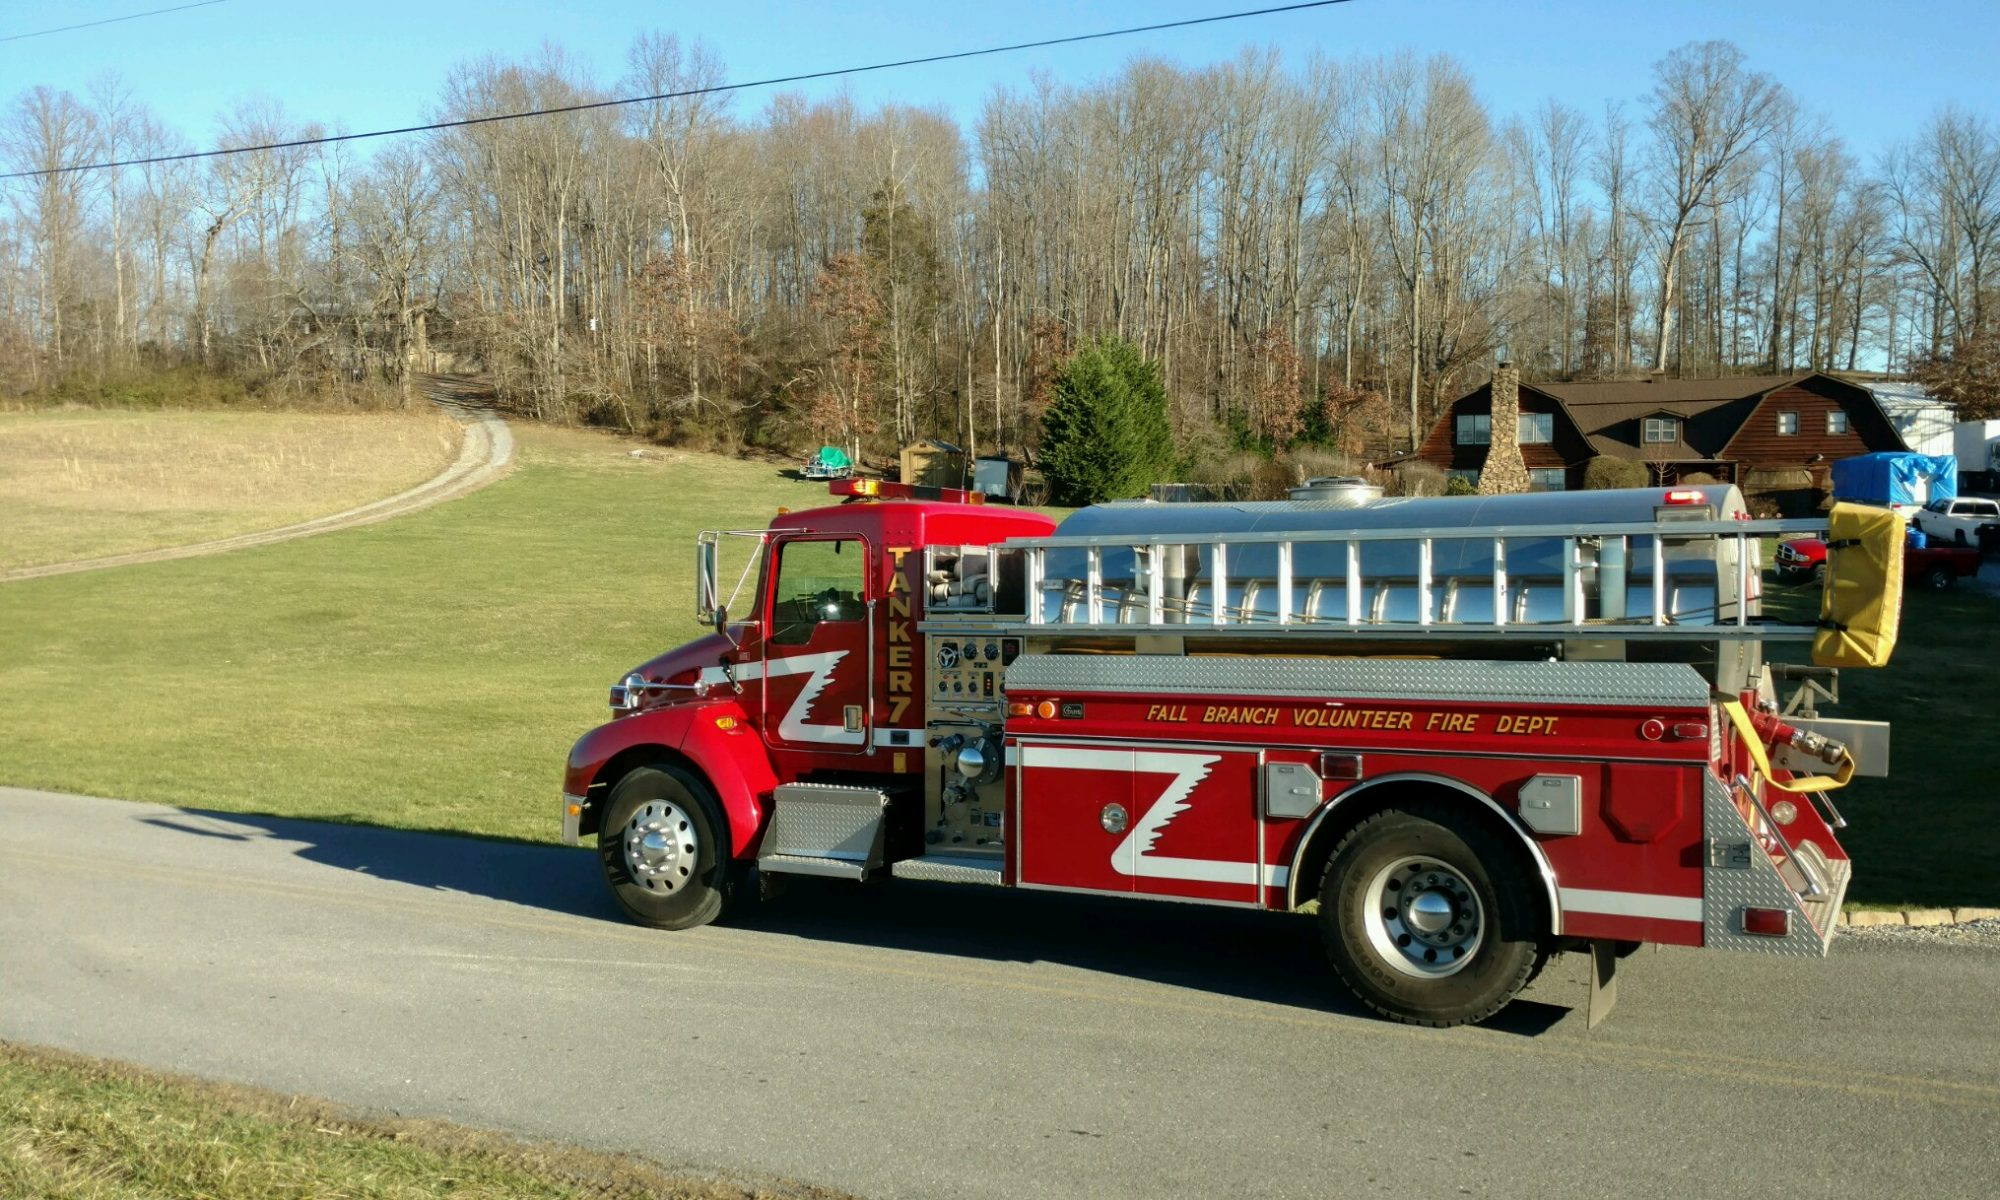 Fall Branch VFD (Washington County, TN)